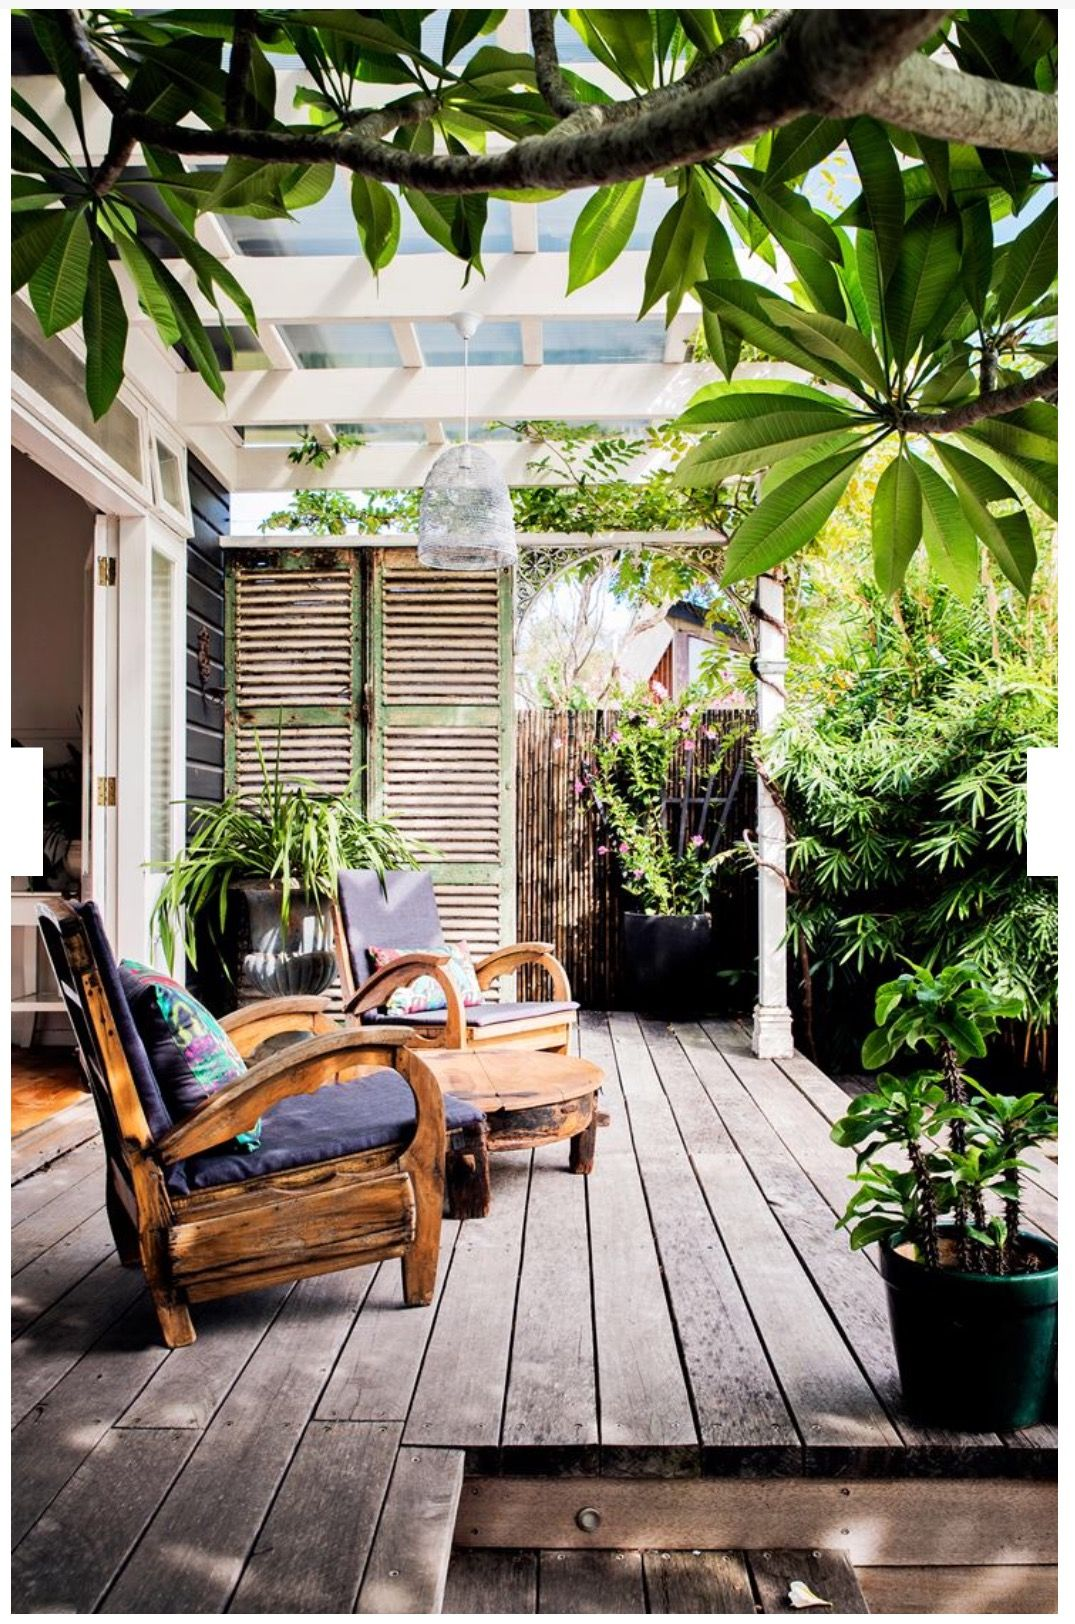 Mylushlifestyle More Home And Garden Inspiration Mylushlifestyle